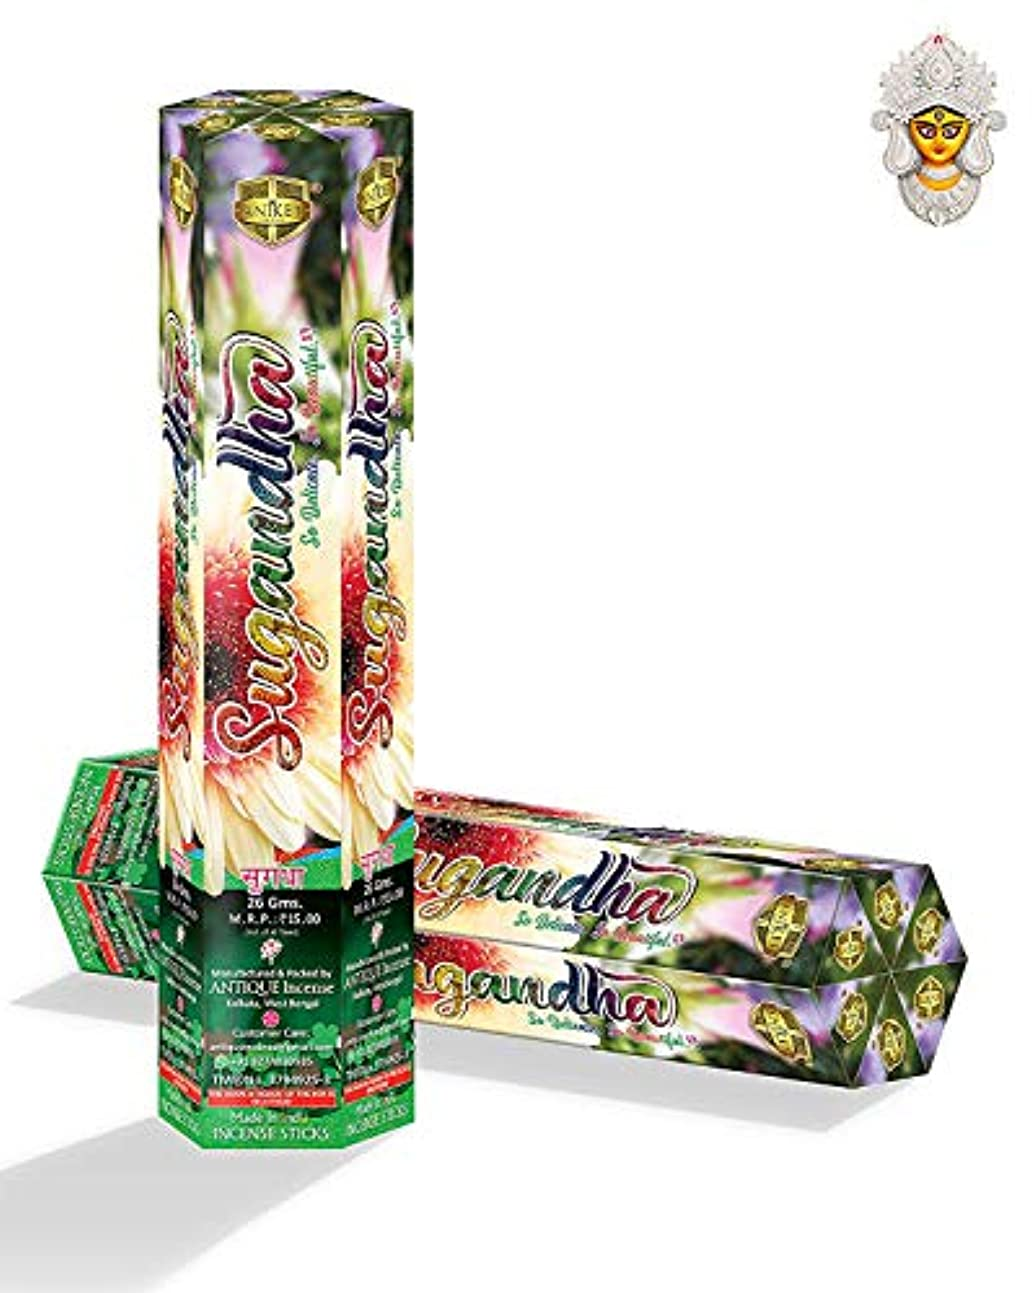 代数ペダルおしゃれじゃないSUGANDHA Sweet & Pleasant Fruity Fragrance Incense Sticks for Pooja (Moisture Proof Pack of 12)